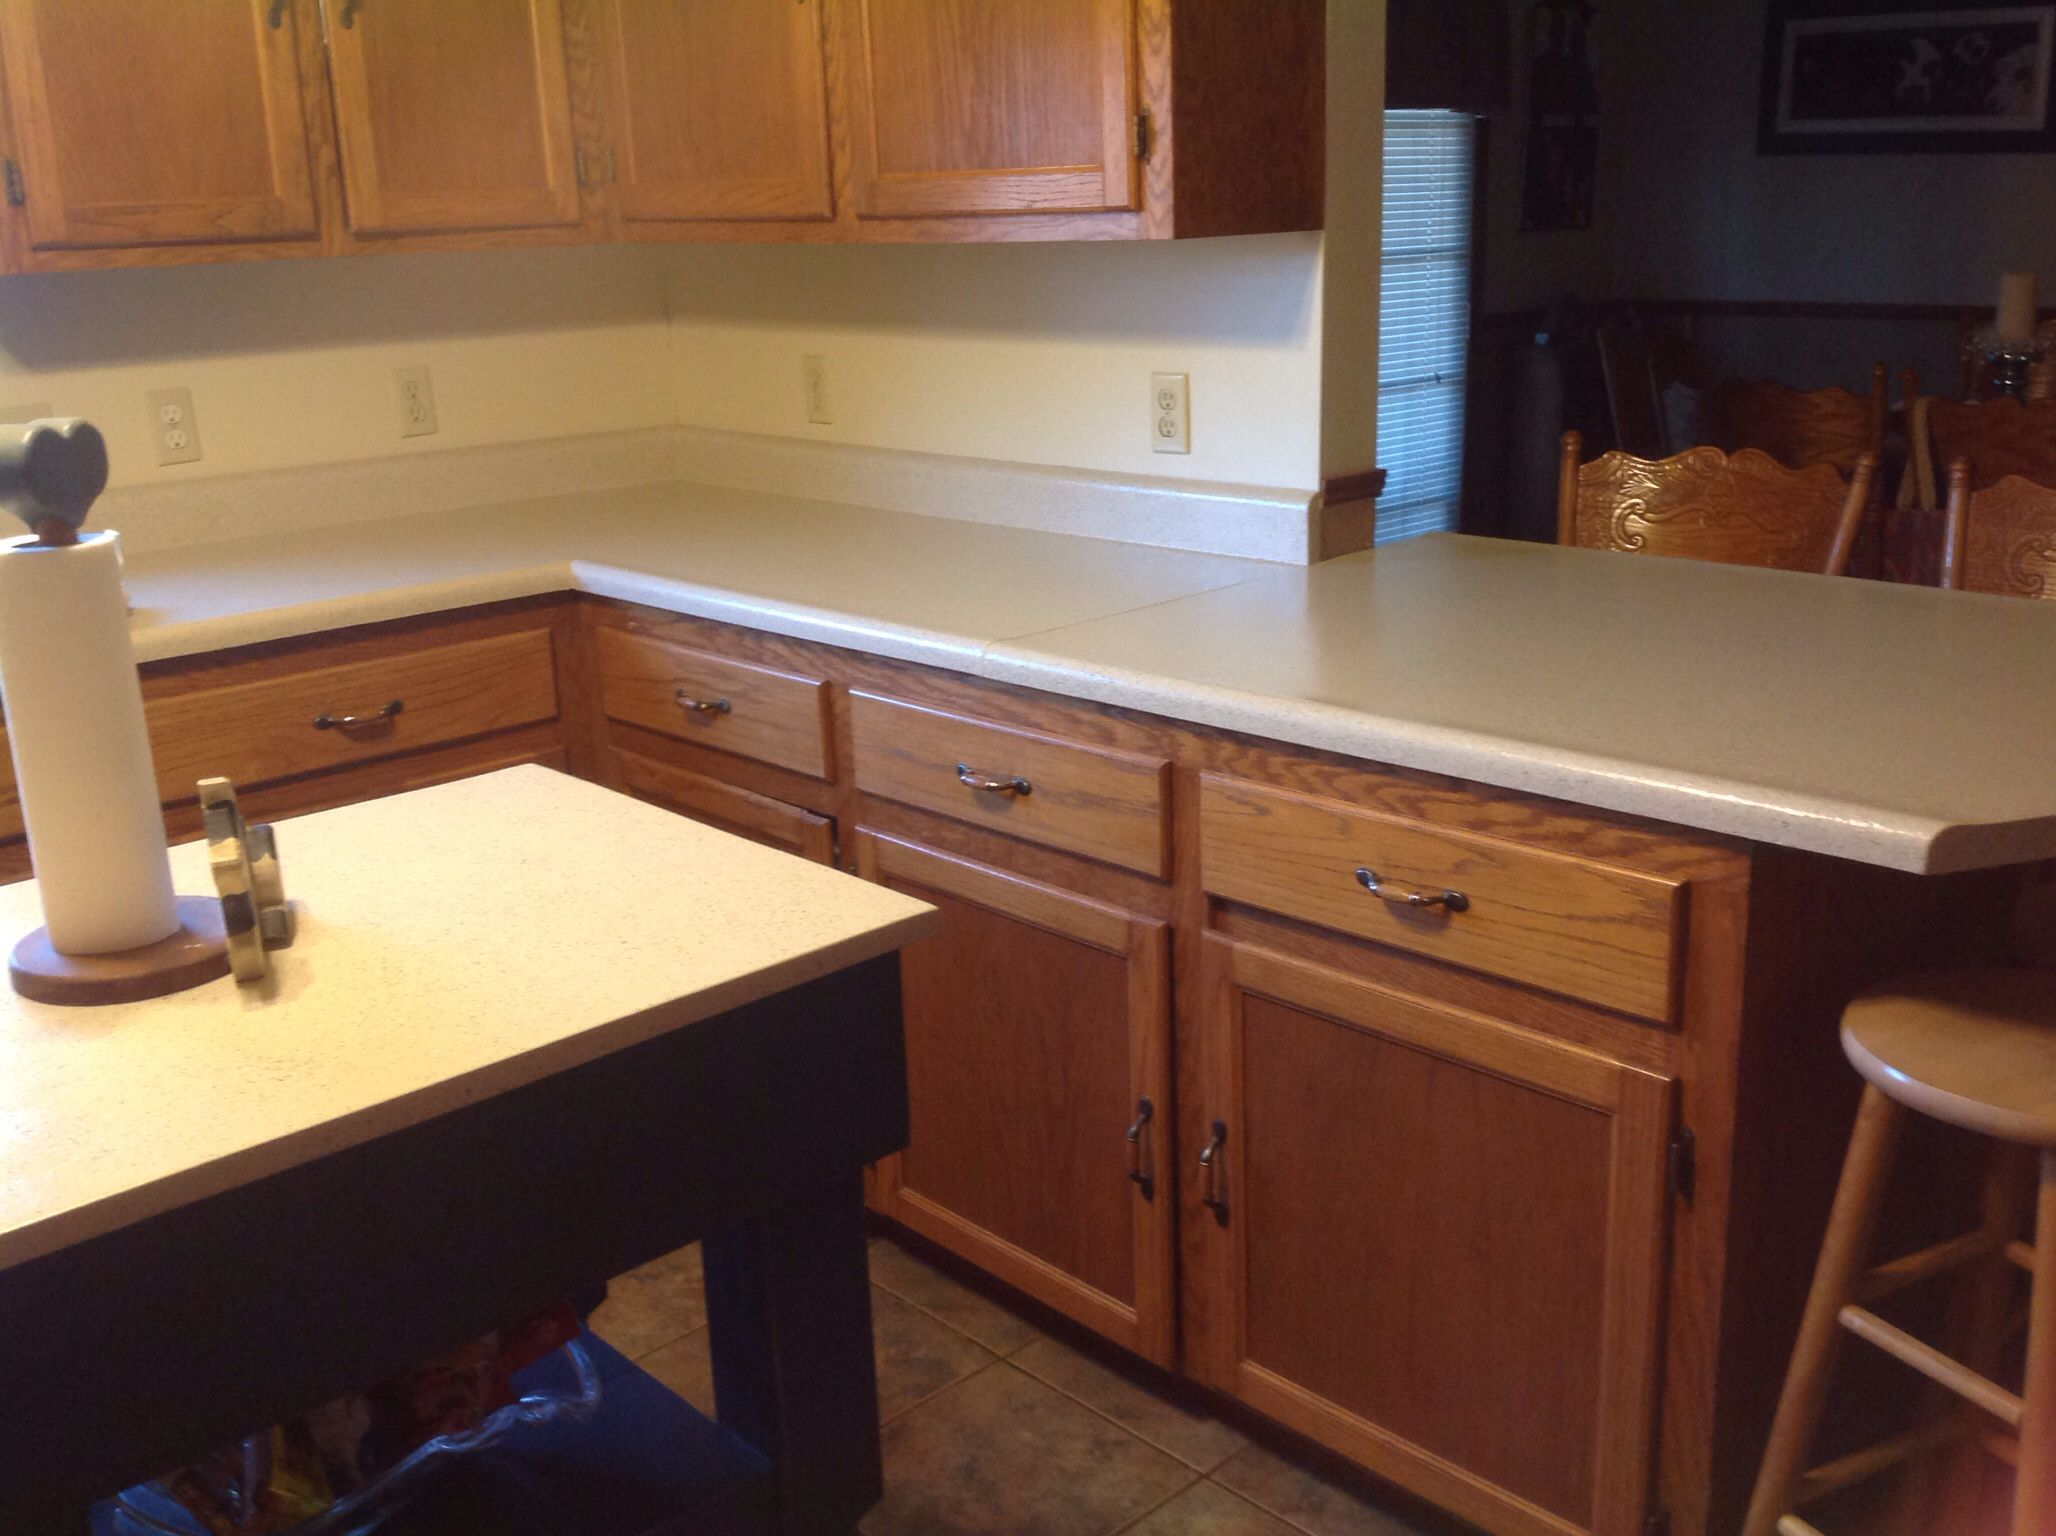 Slab granite countertops: Daich countertop paint